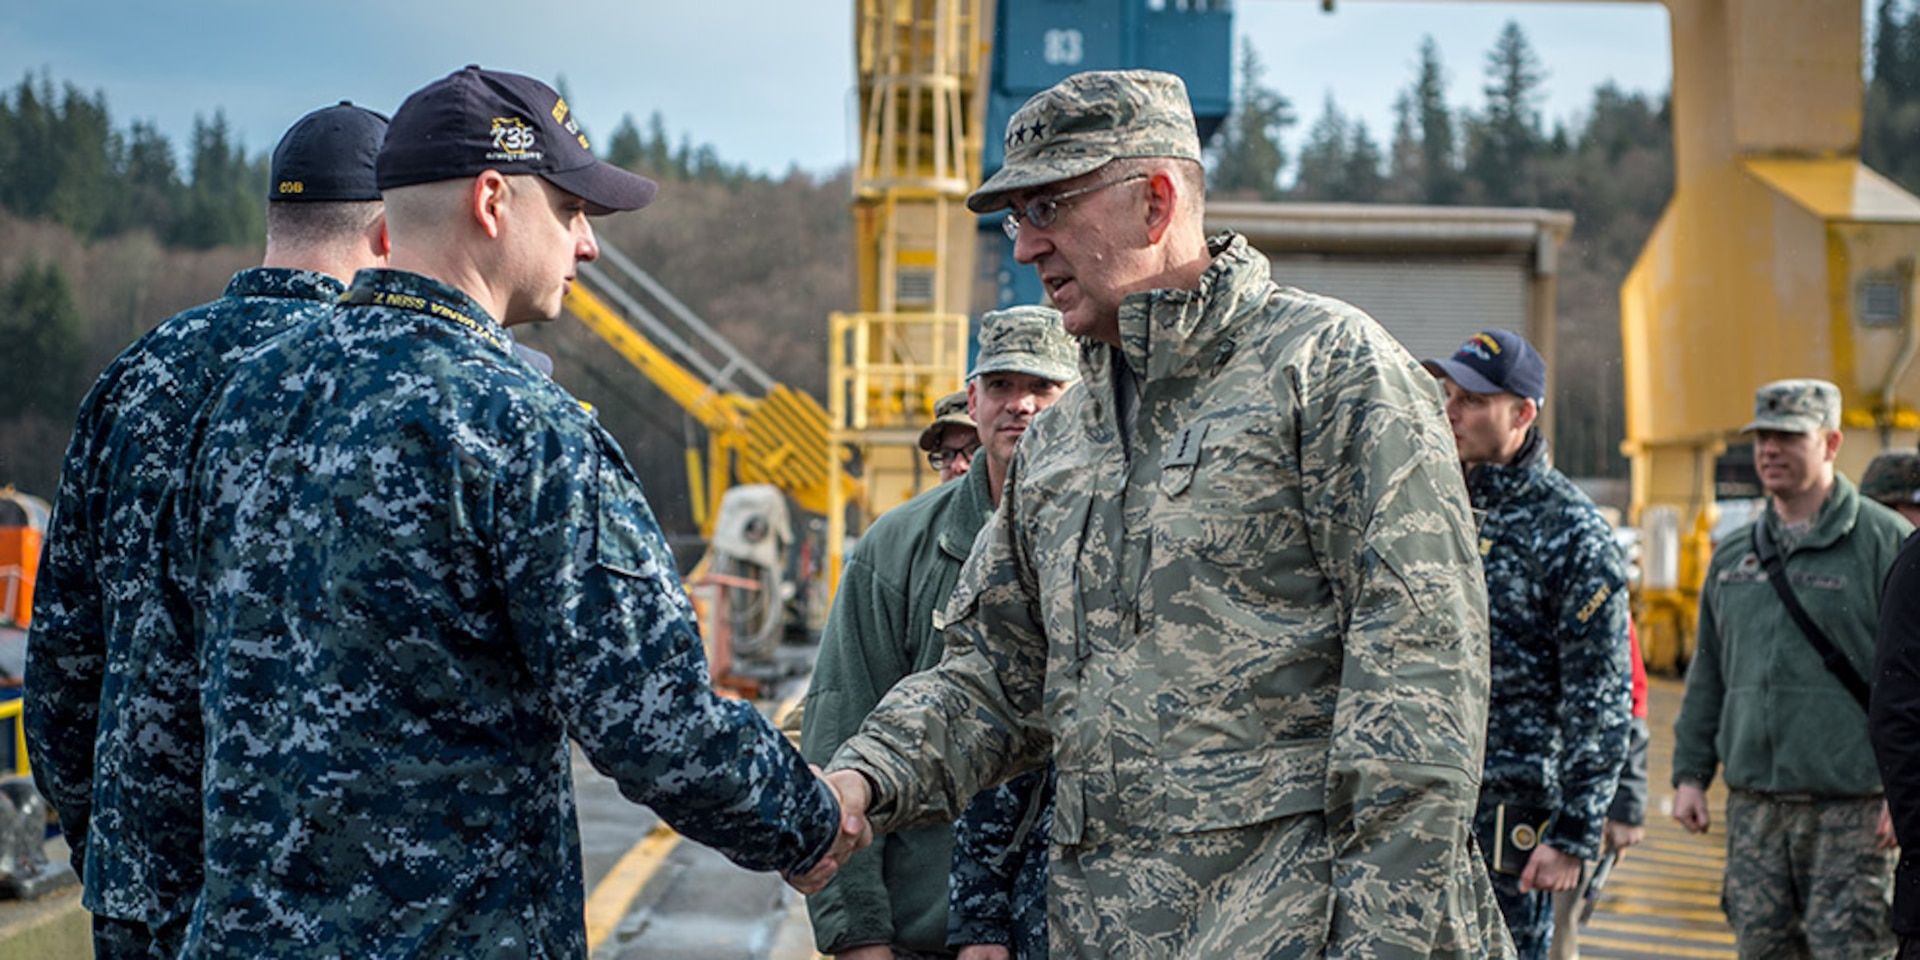 BANGOR, Wash. (Jan. 18, 2018) - U.S. Air Force Gen. John Hyten (right), commander of U.S. Strategic Command, arrives at the Ohio-class ballistic missile submarine USS Pennsylvania (SSBN 735) and shakes hands with Gold Crew Chief of the Boat, U.S. Navy, Master Chief Missile Technician (SS) Petty Officer Dylan Lapinski, at Naval Base Kitsap-Bangor, Wash., Jan 18, 2018. Hyten visited staff and facilities assigned to Commander Submarine Group 9  to see the operations of one leg of the nuclear triad.